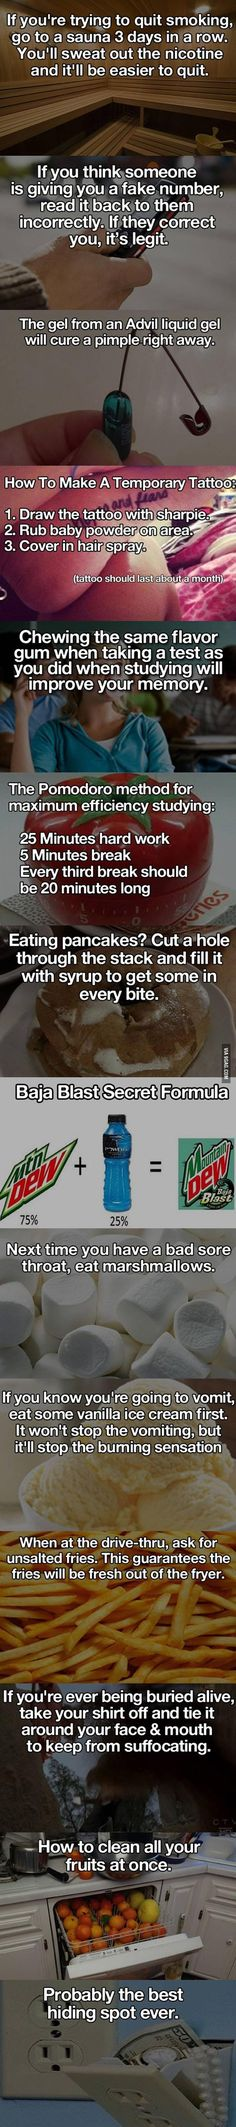 Some Interesting Life Hacks